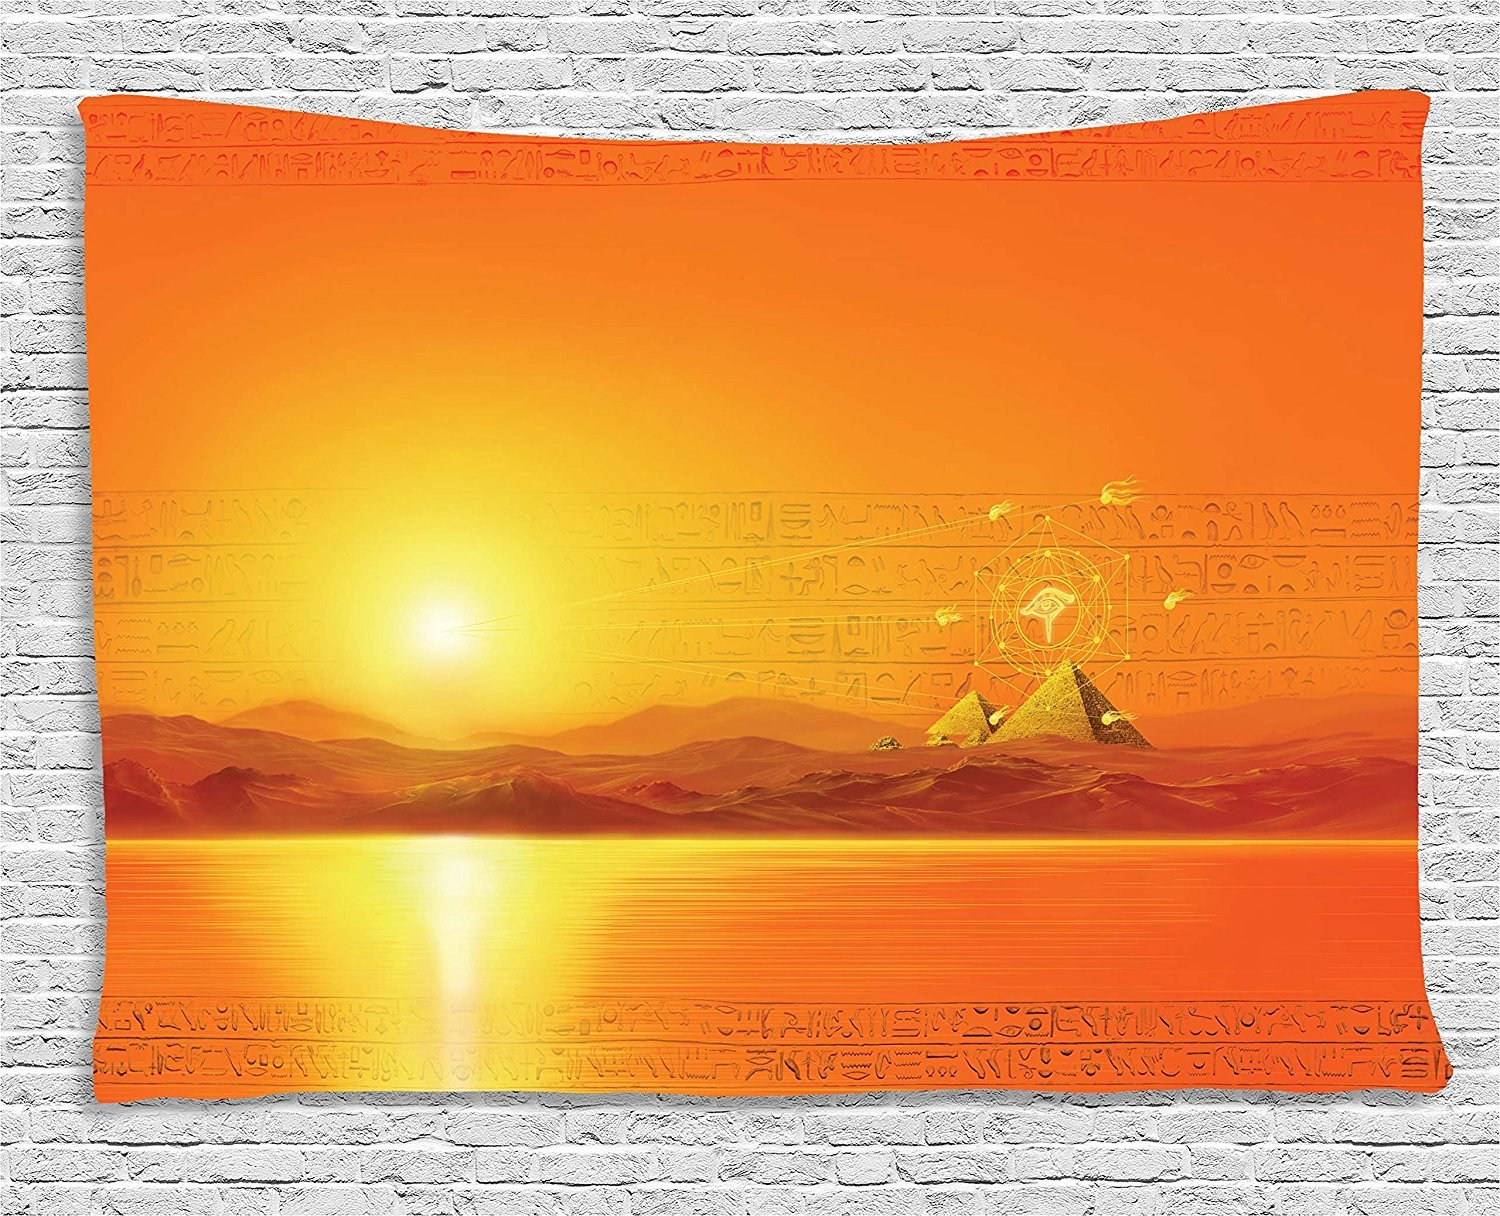 asddcdfdd Egypt Decor Tapestry, Sacred Geometry Symbol Hanging in the Air Sun Ancient Scene Reflection Print, Wall Hanging for Bedroom Living Room Dorm, 60 W X 40 L Inches, Yellow Orange